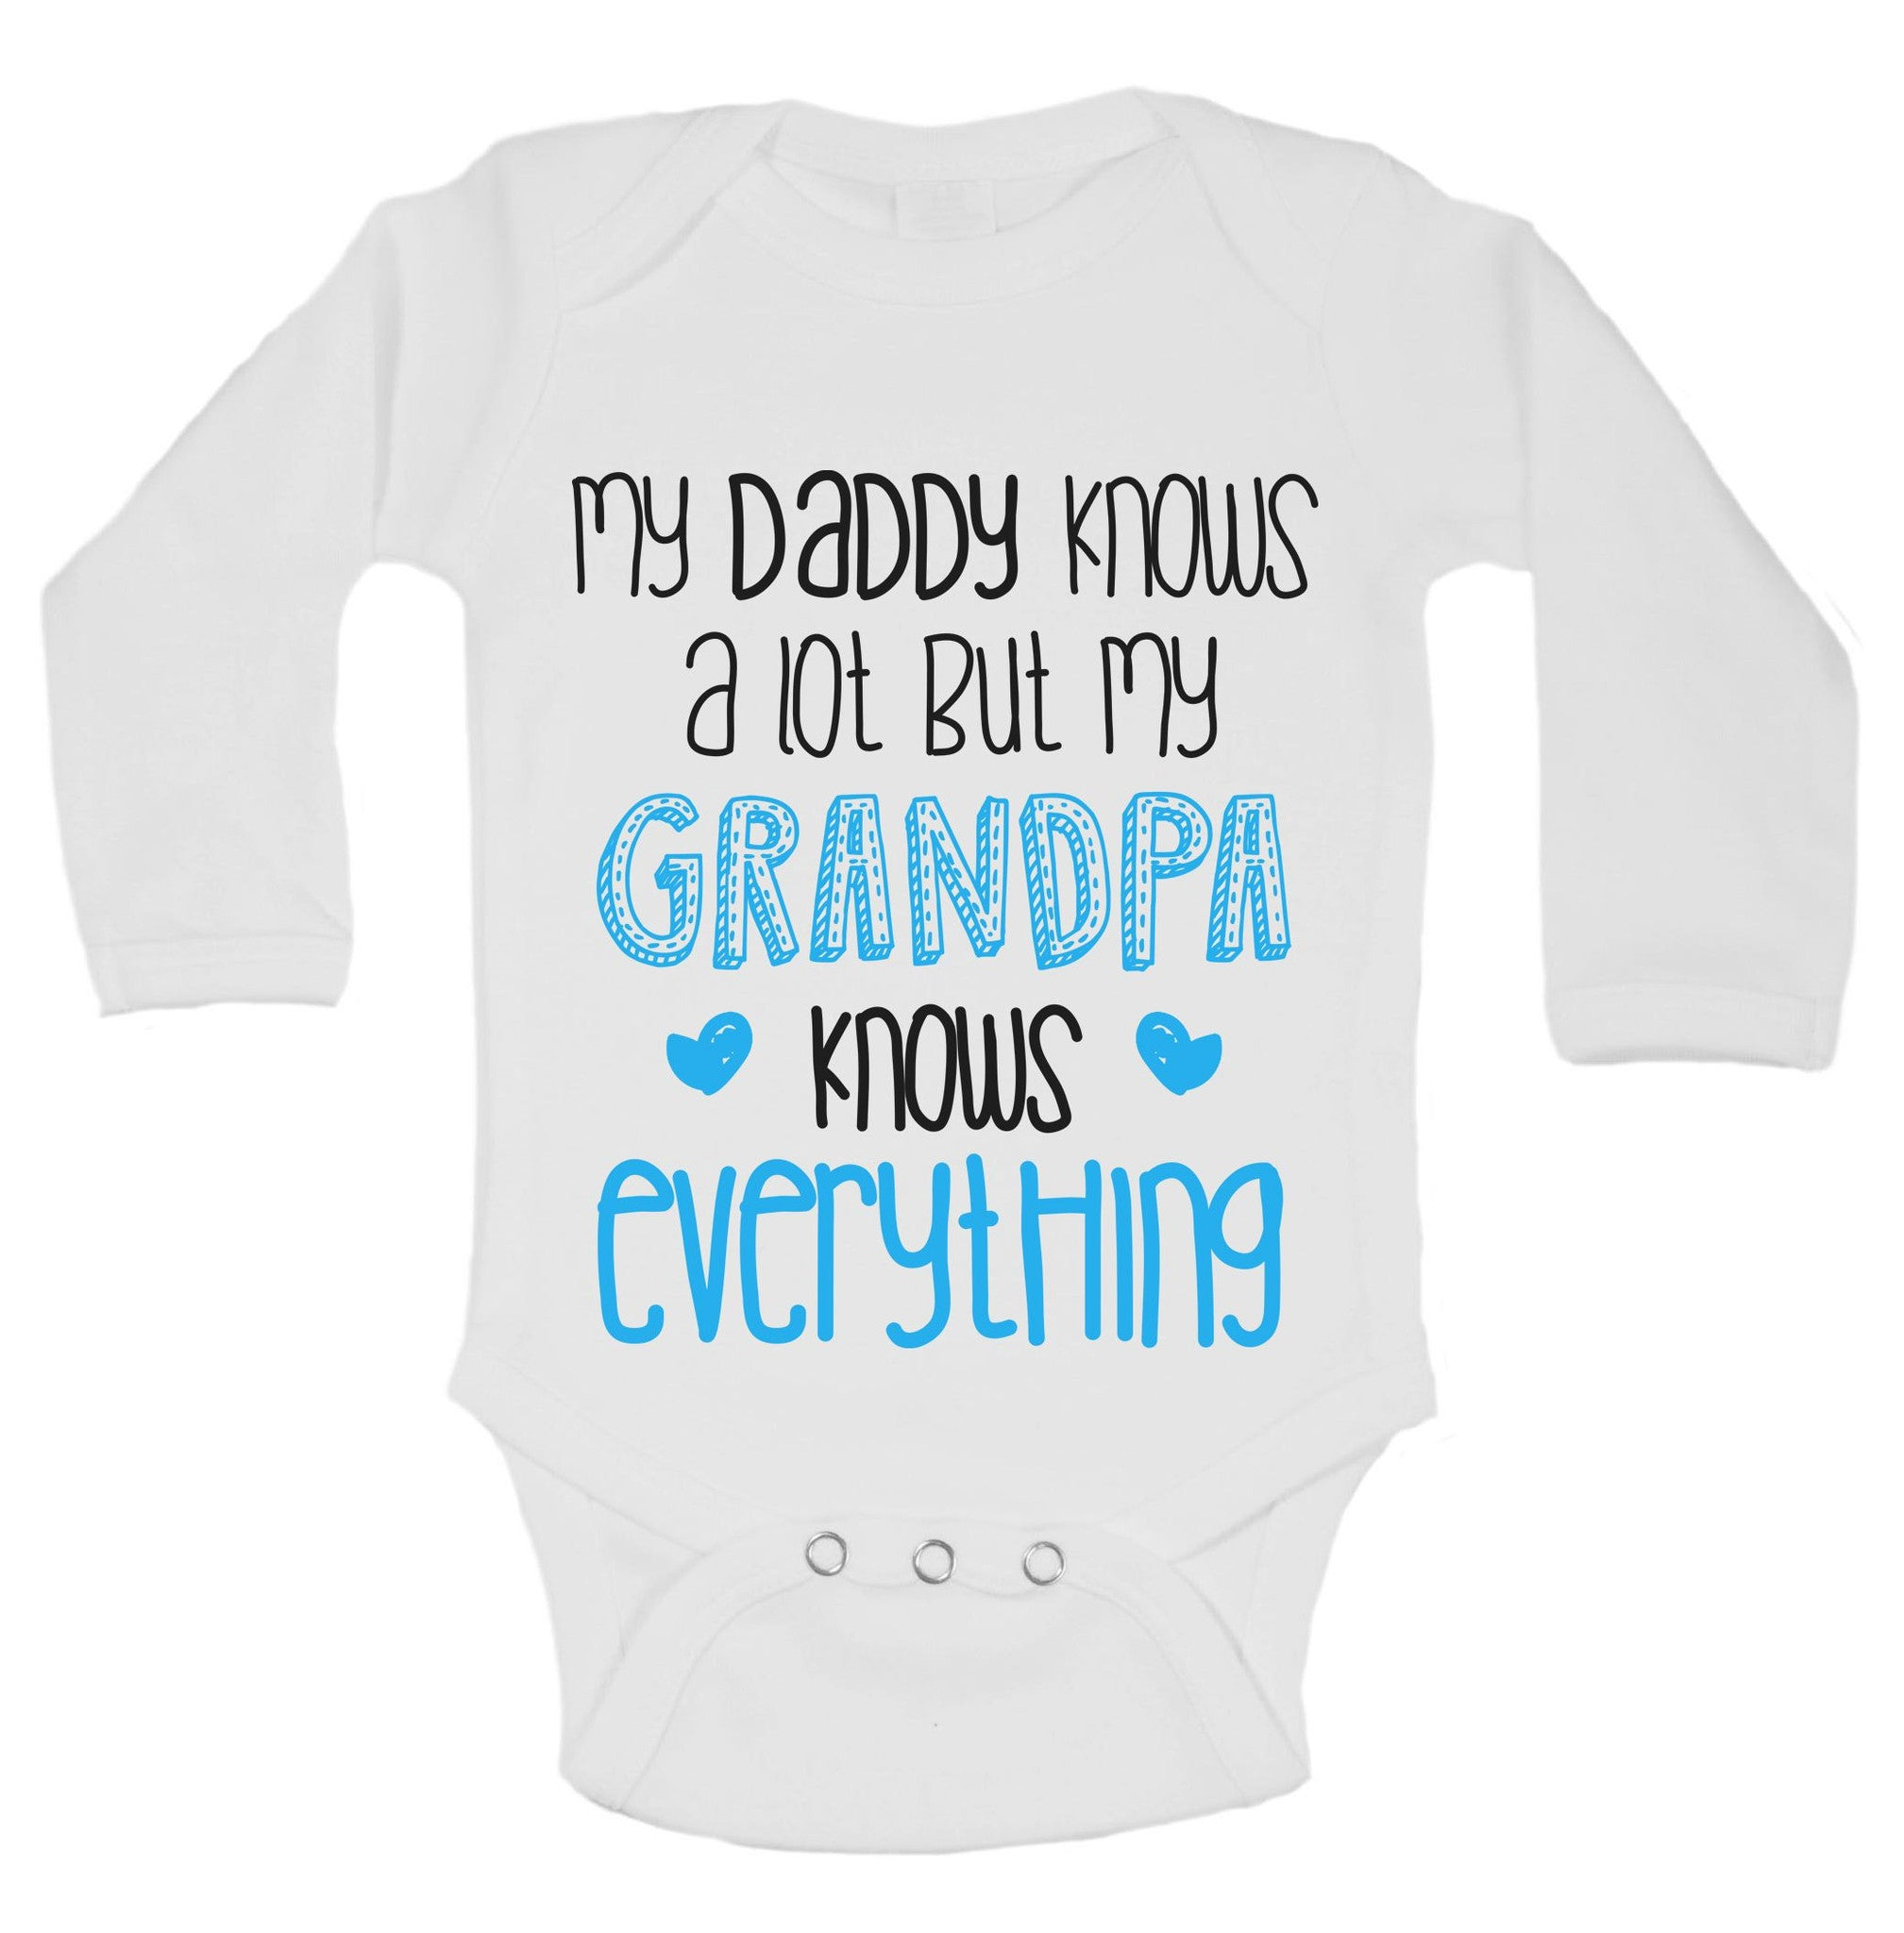 My Daddy Knows A Lot But My Grandpa Knows Everything Funny Kids Onesie - B142 - Funny Shirts Tank Tops Burnouts and Triblends  - 1